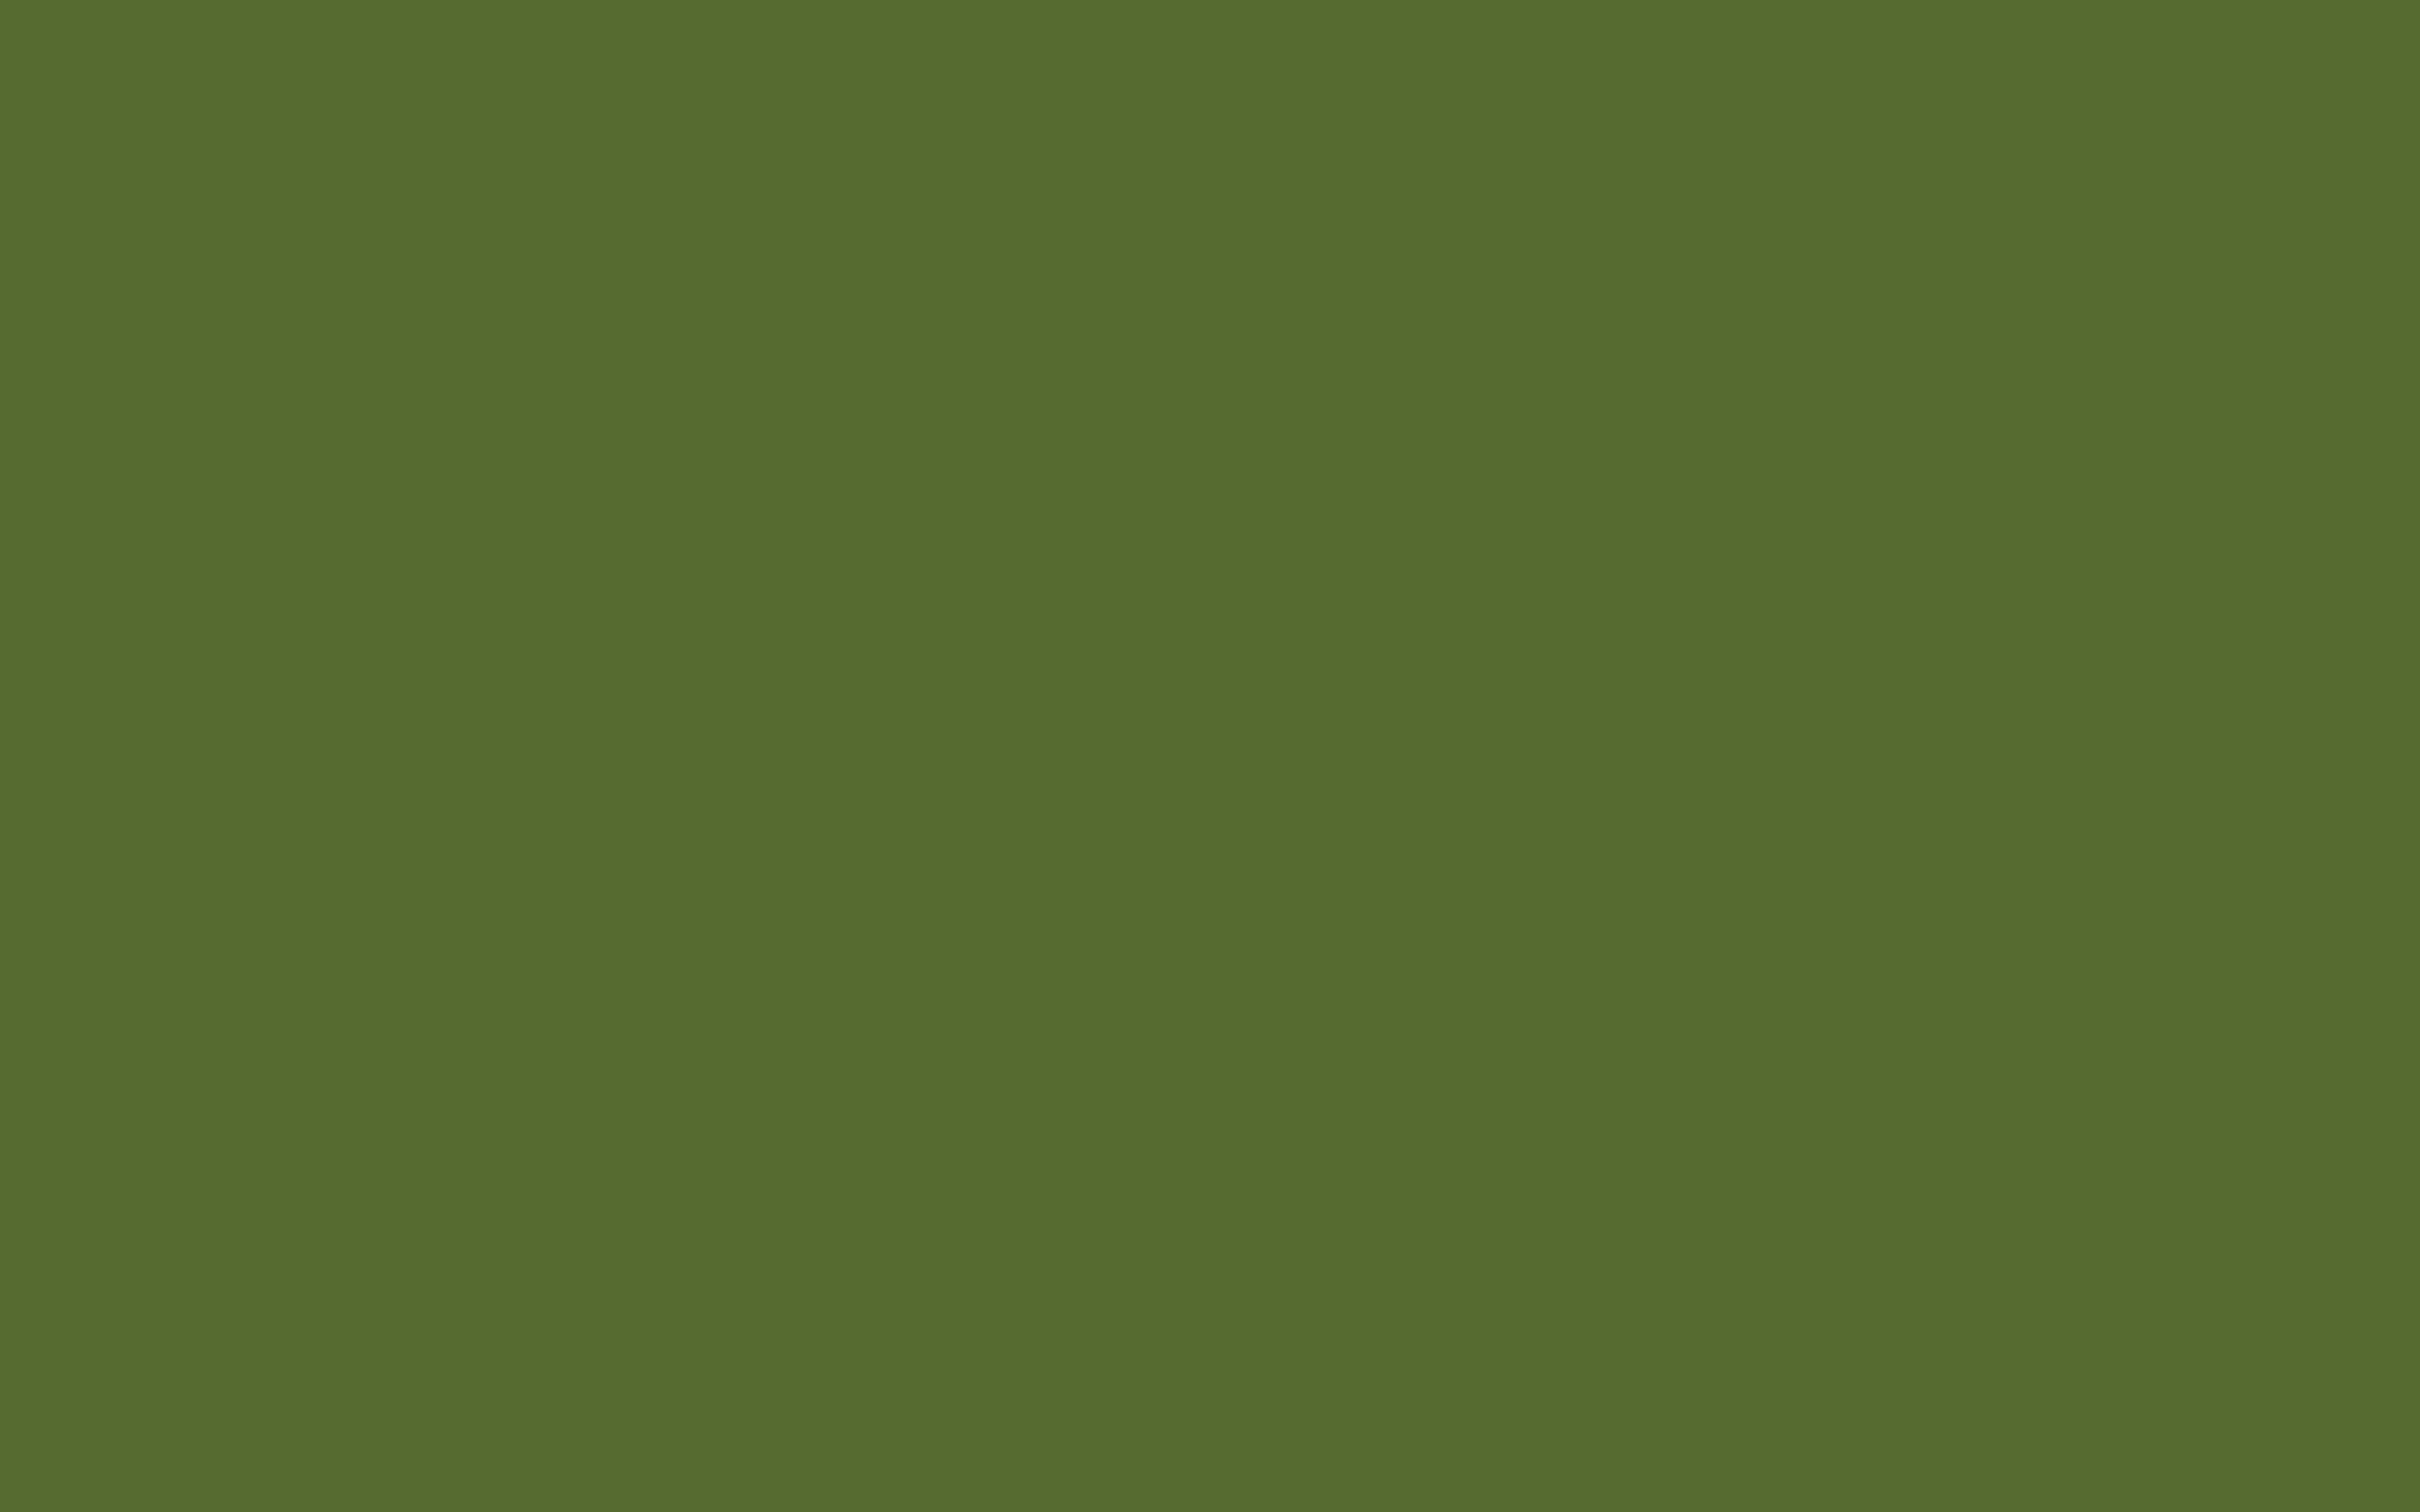 Olive Green Wallpaper Wallpapersafari